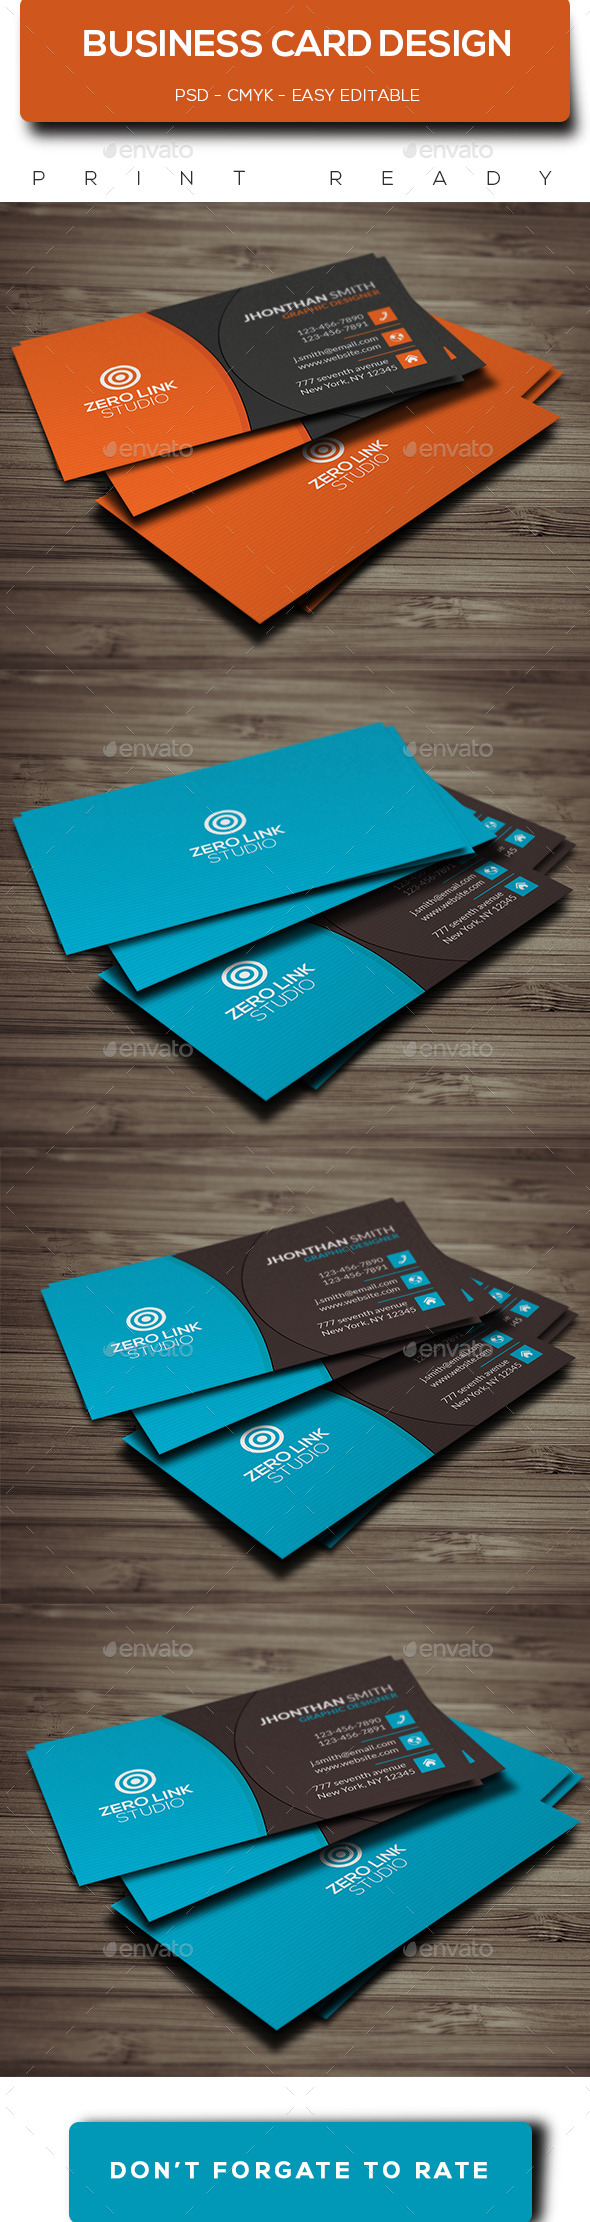 Corporate business card template design buy and download http corporate business card template design buy and download httpgraphicriver reheart Gallery